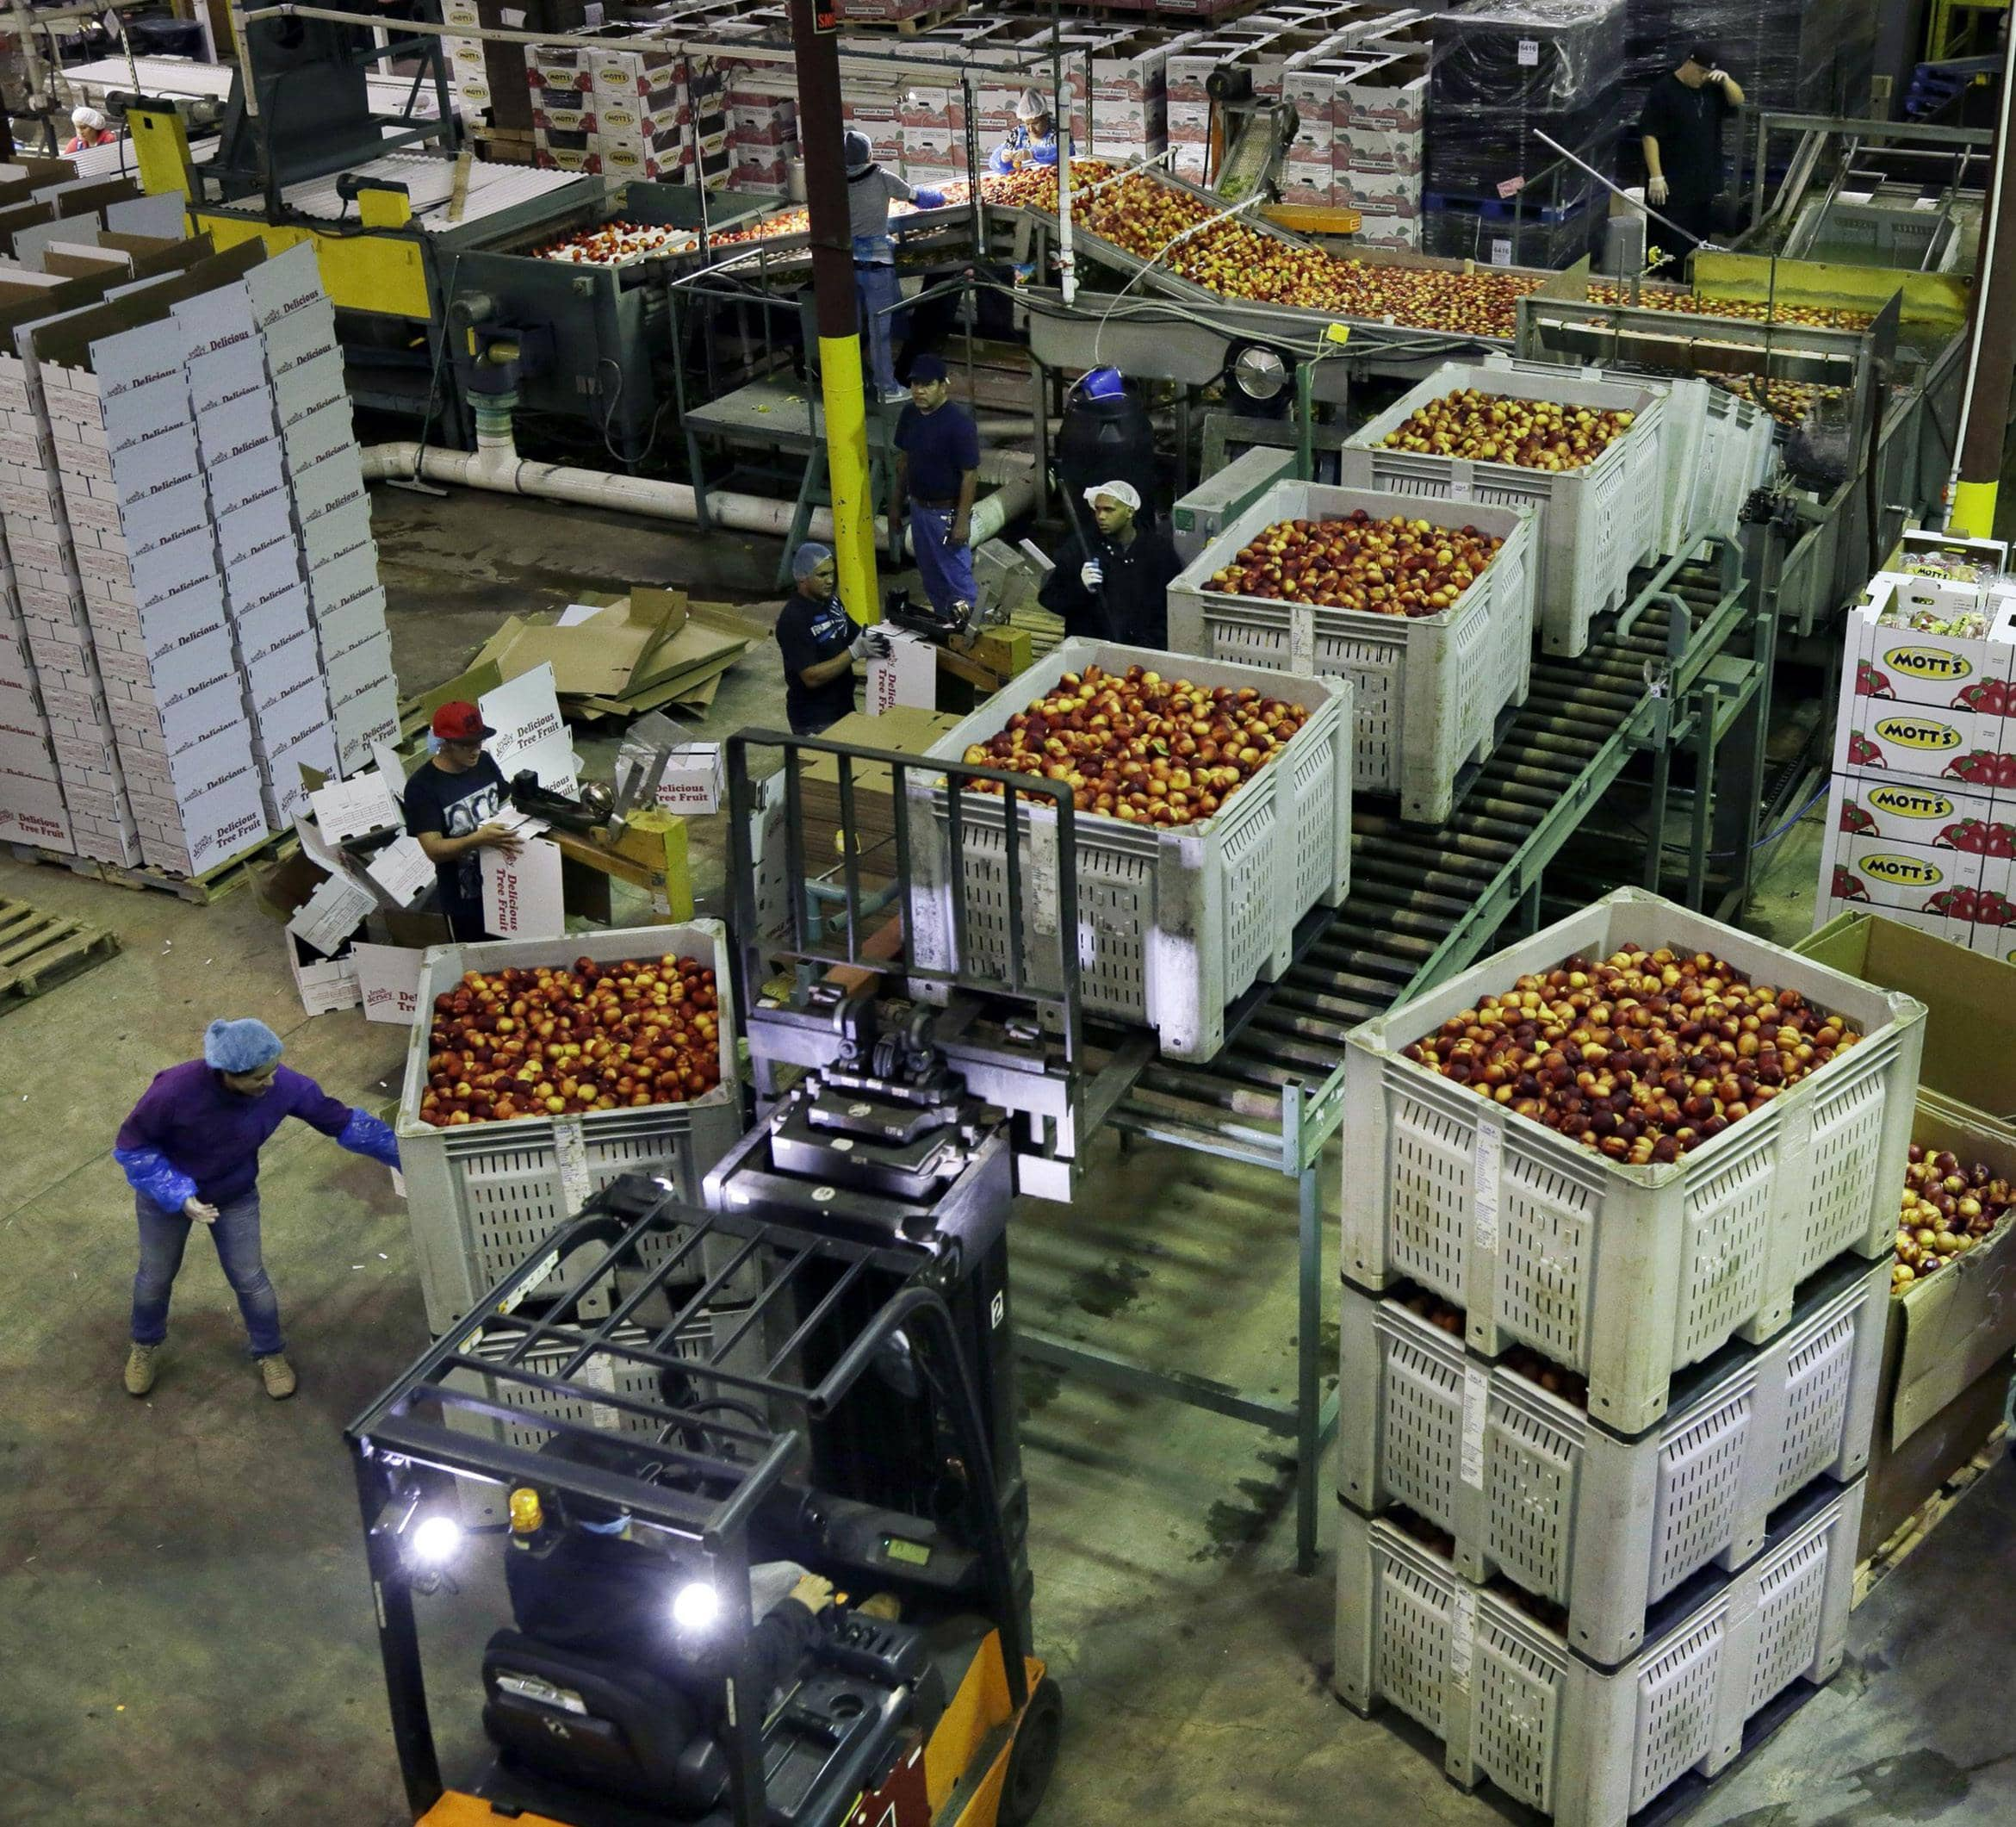 US Wholesale Prices Fall 0.6%, Biggest Decline In 5 Years